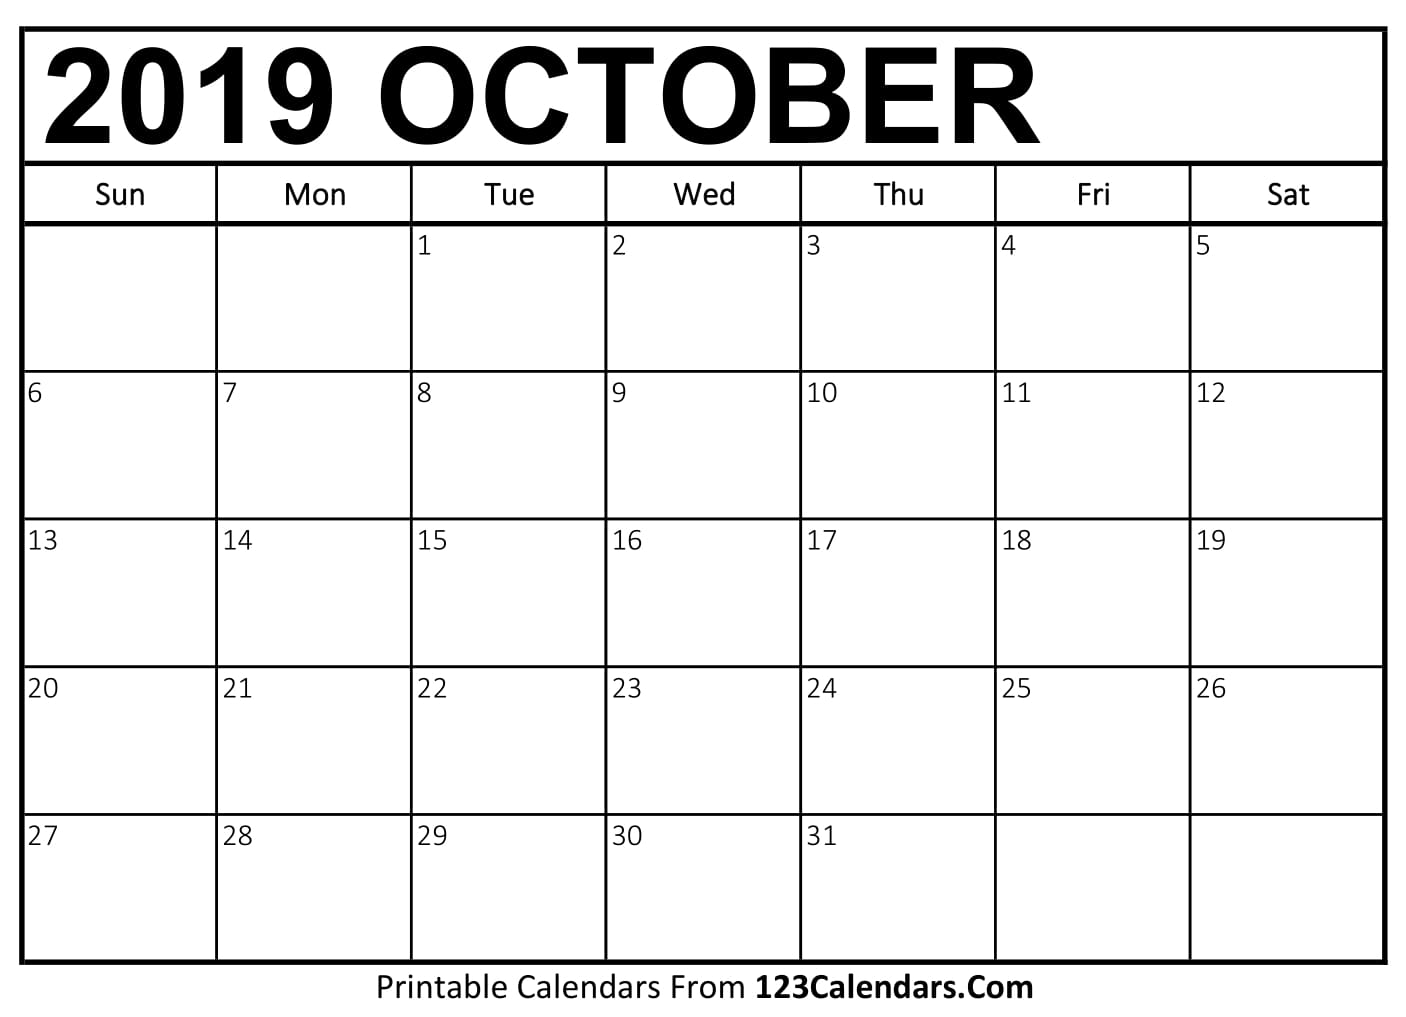 photograph regarding October Calendar Printable named Oct 2019 Printable Calendar